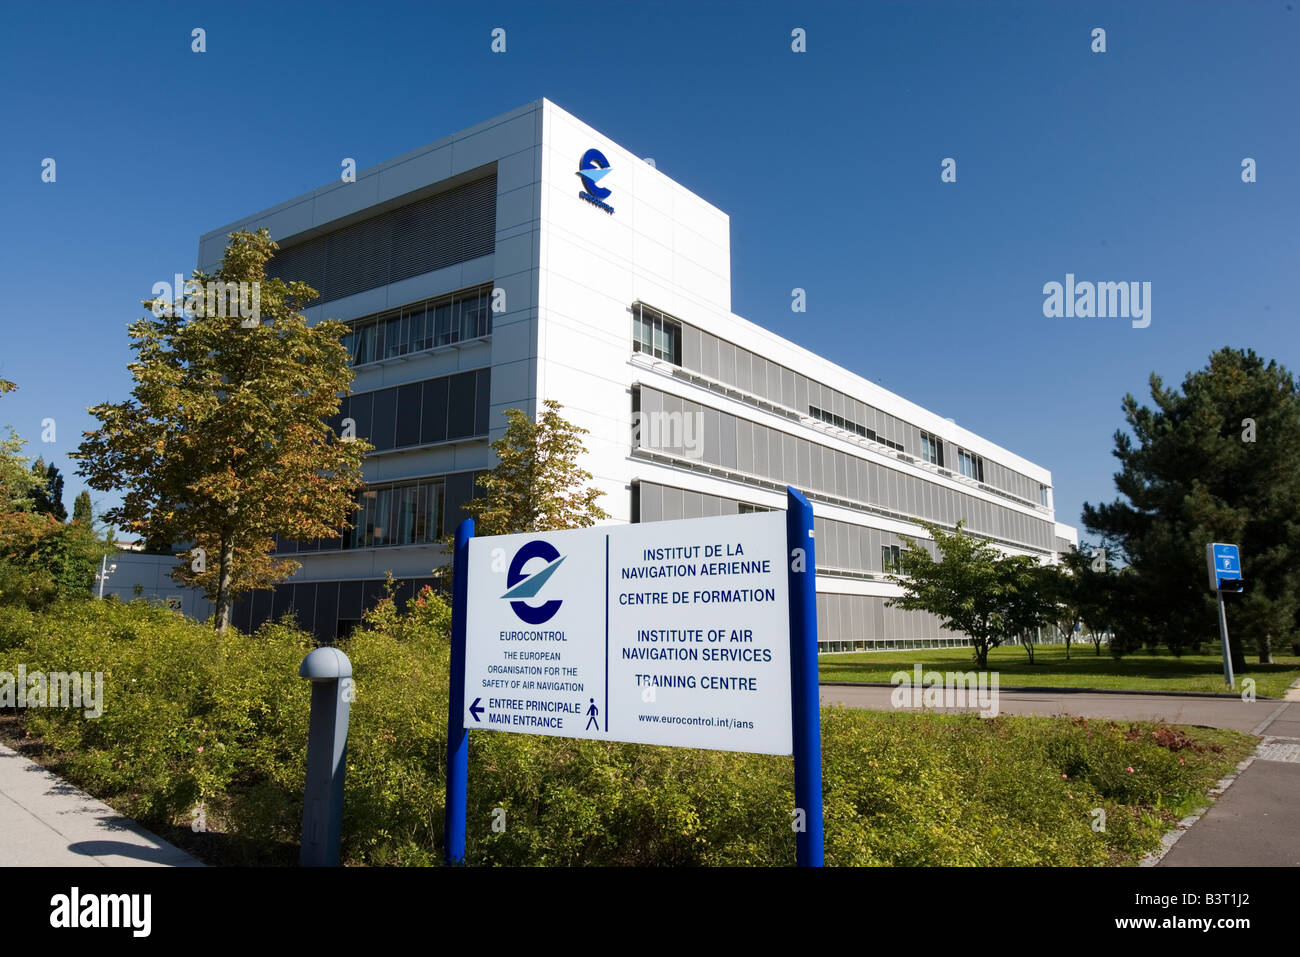 Luxembourg town Europe quarter Eurocontrol Institute of Air navigation services Institut de la Navigation aerienne - Stock Image